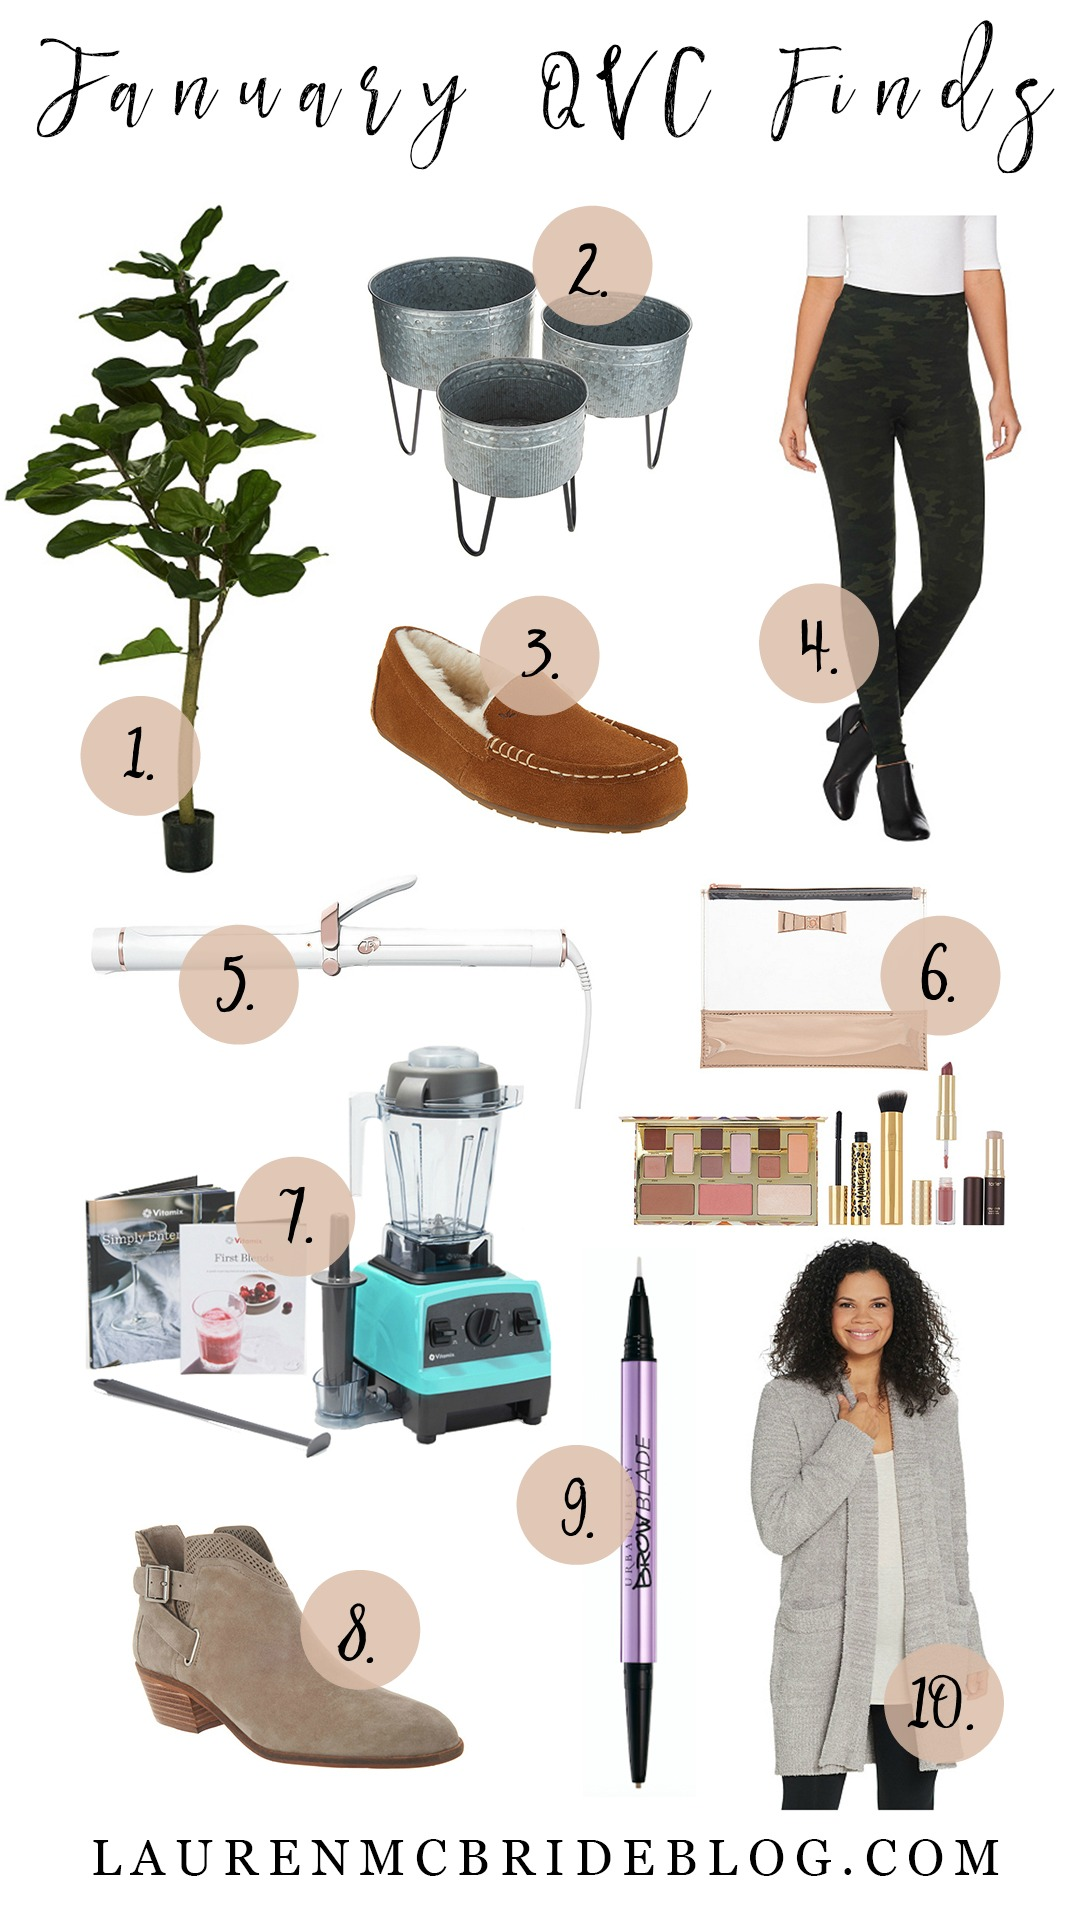 Connecticut life and style blogger Lauren McBride shares her January QVC Finds including a faux fiddle leaf fit, beauty deals, and cozy options.